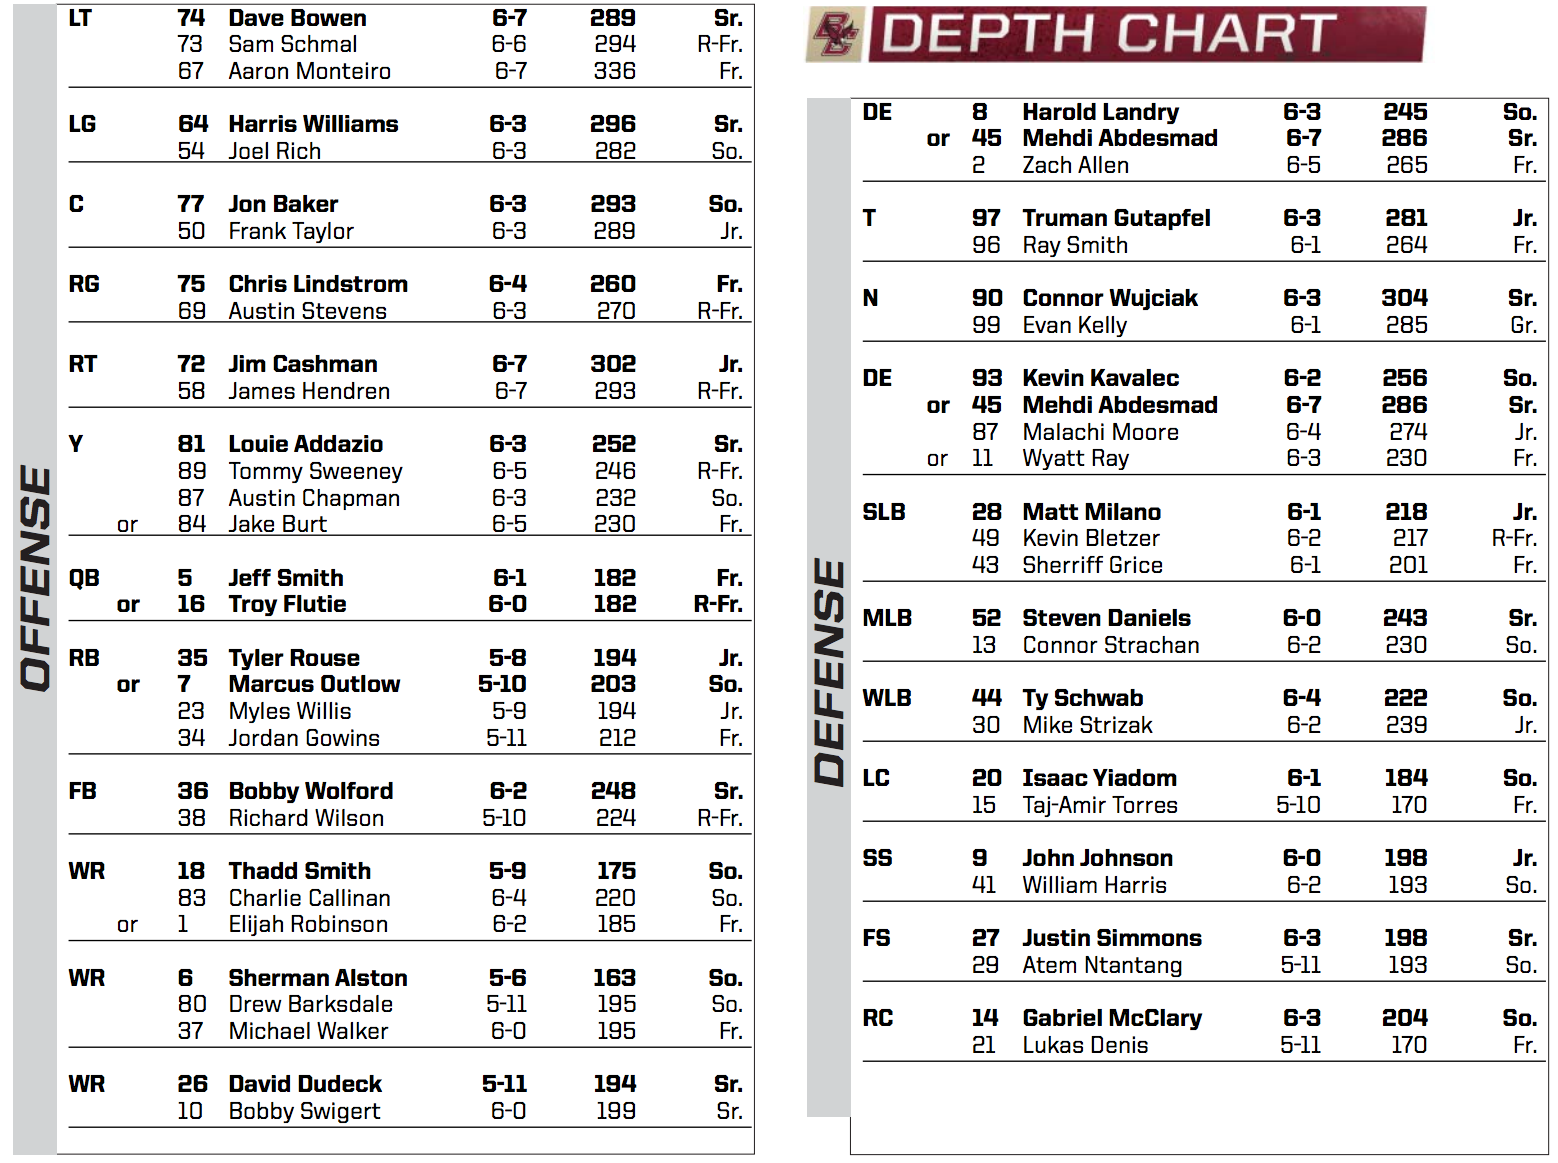 Florida State Depth Chart